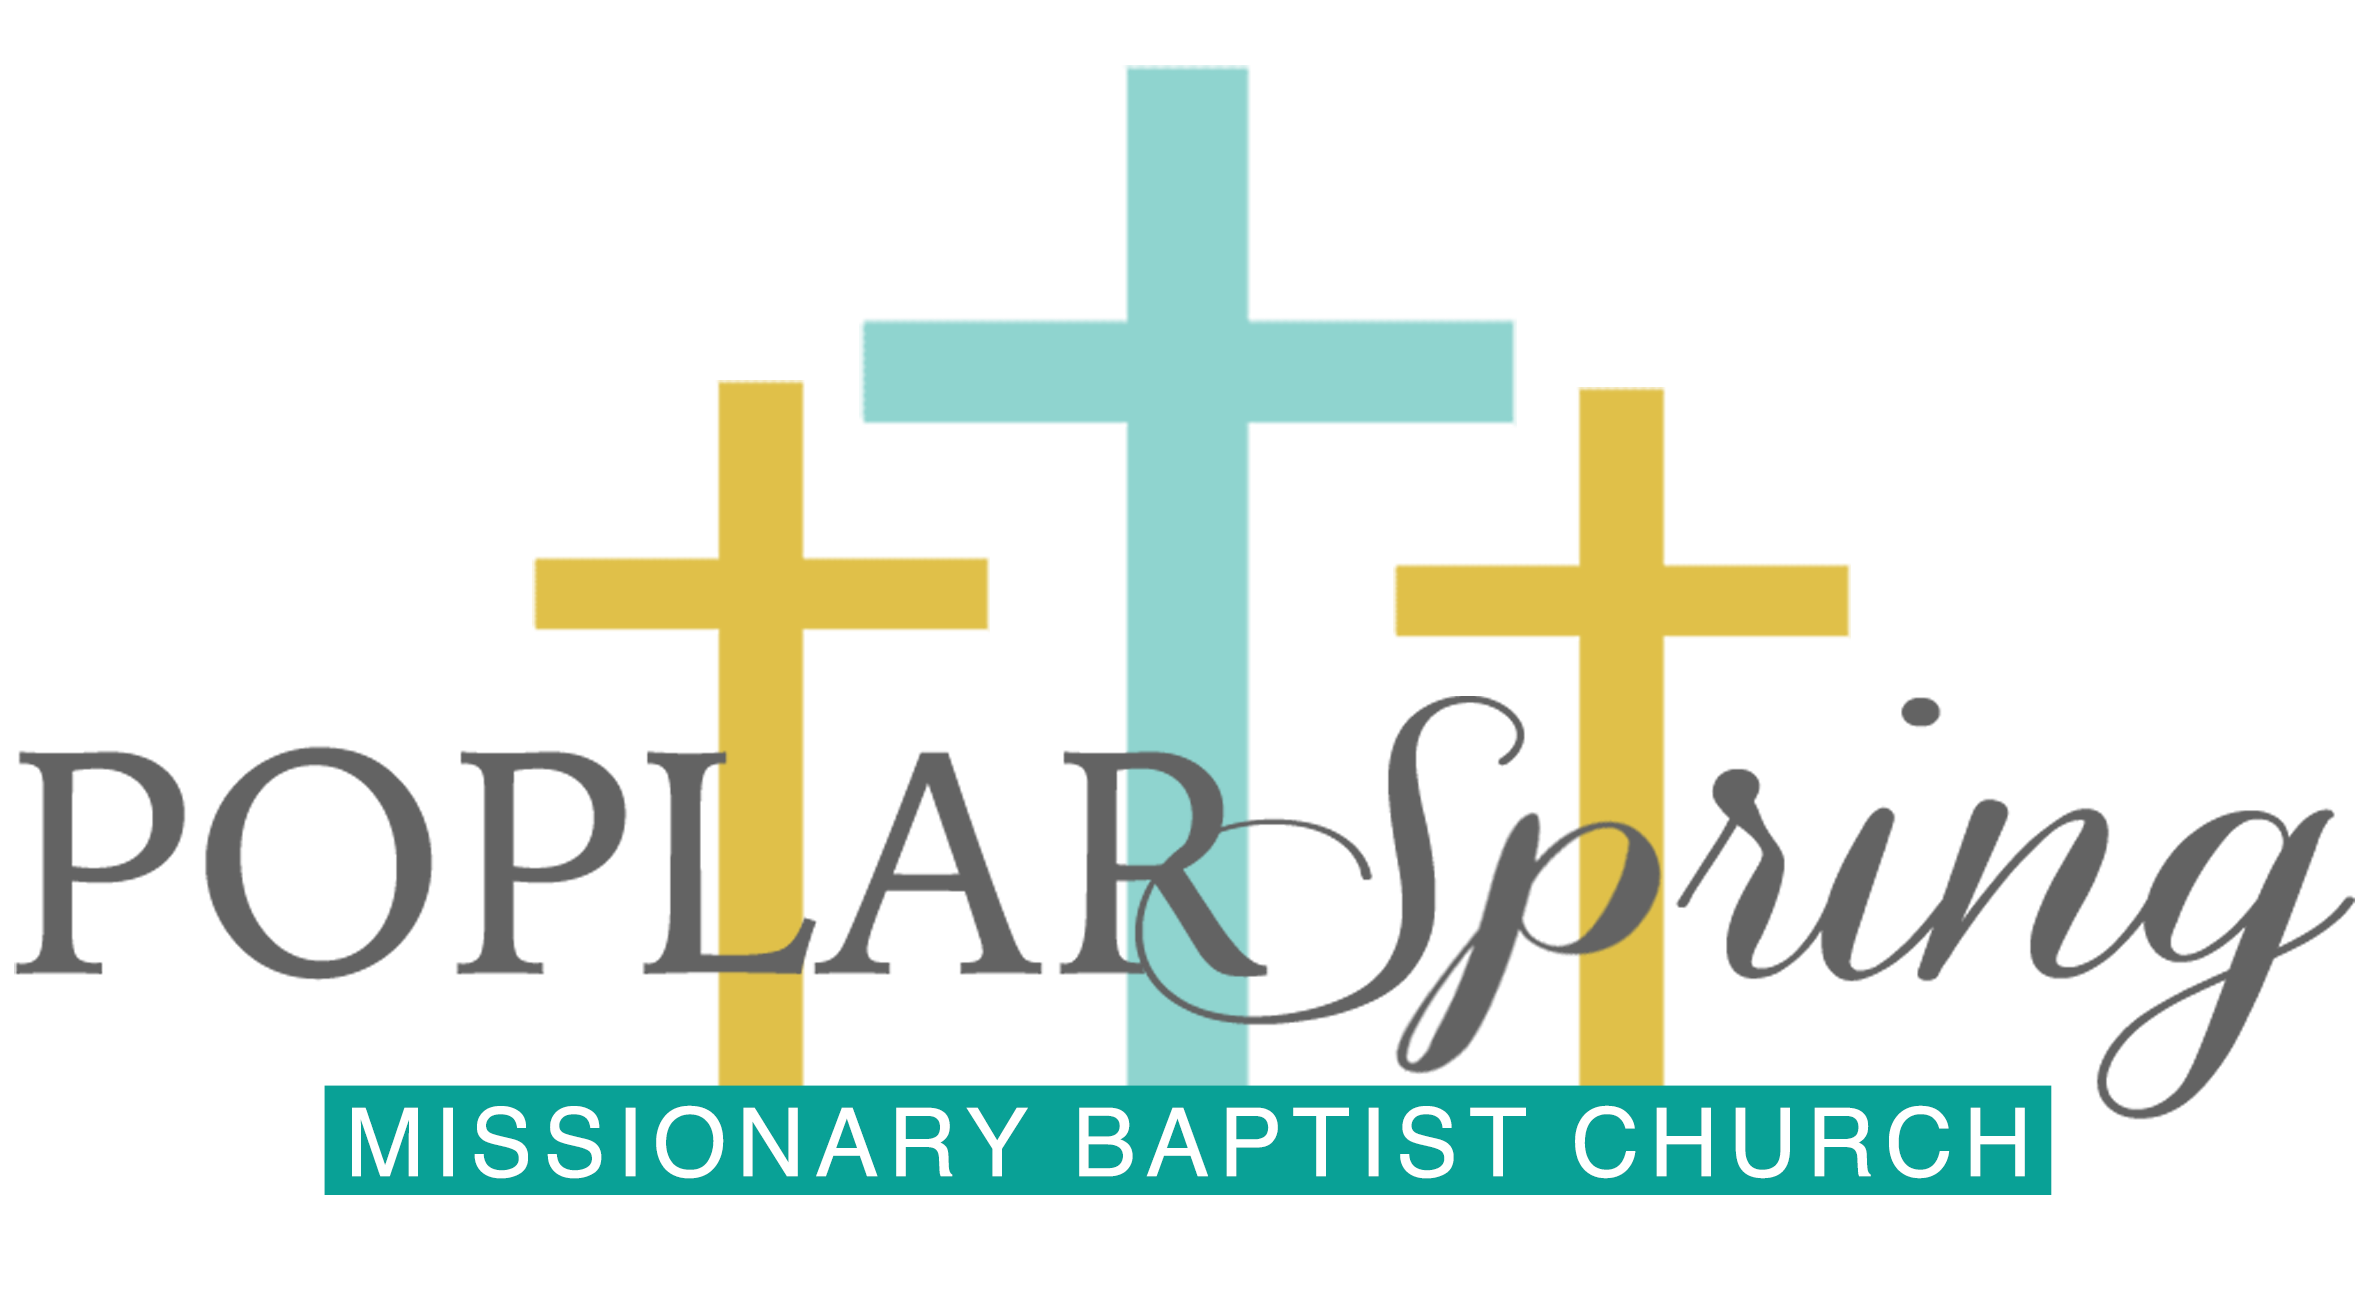 Baptist cross clipart vector library stock Poplar Spring Baptist Church | vector library stock